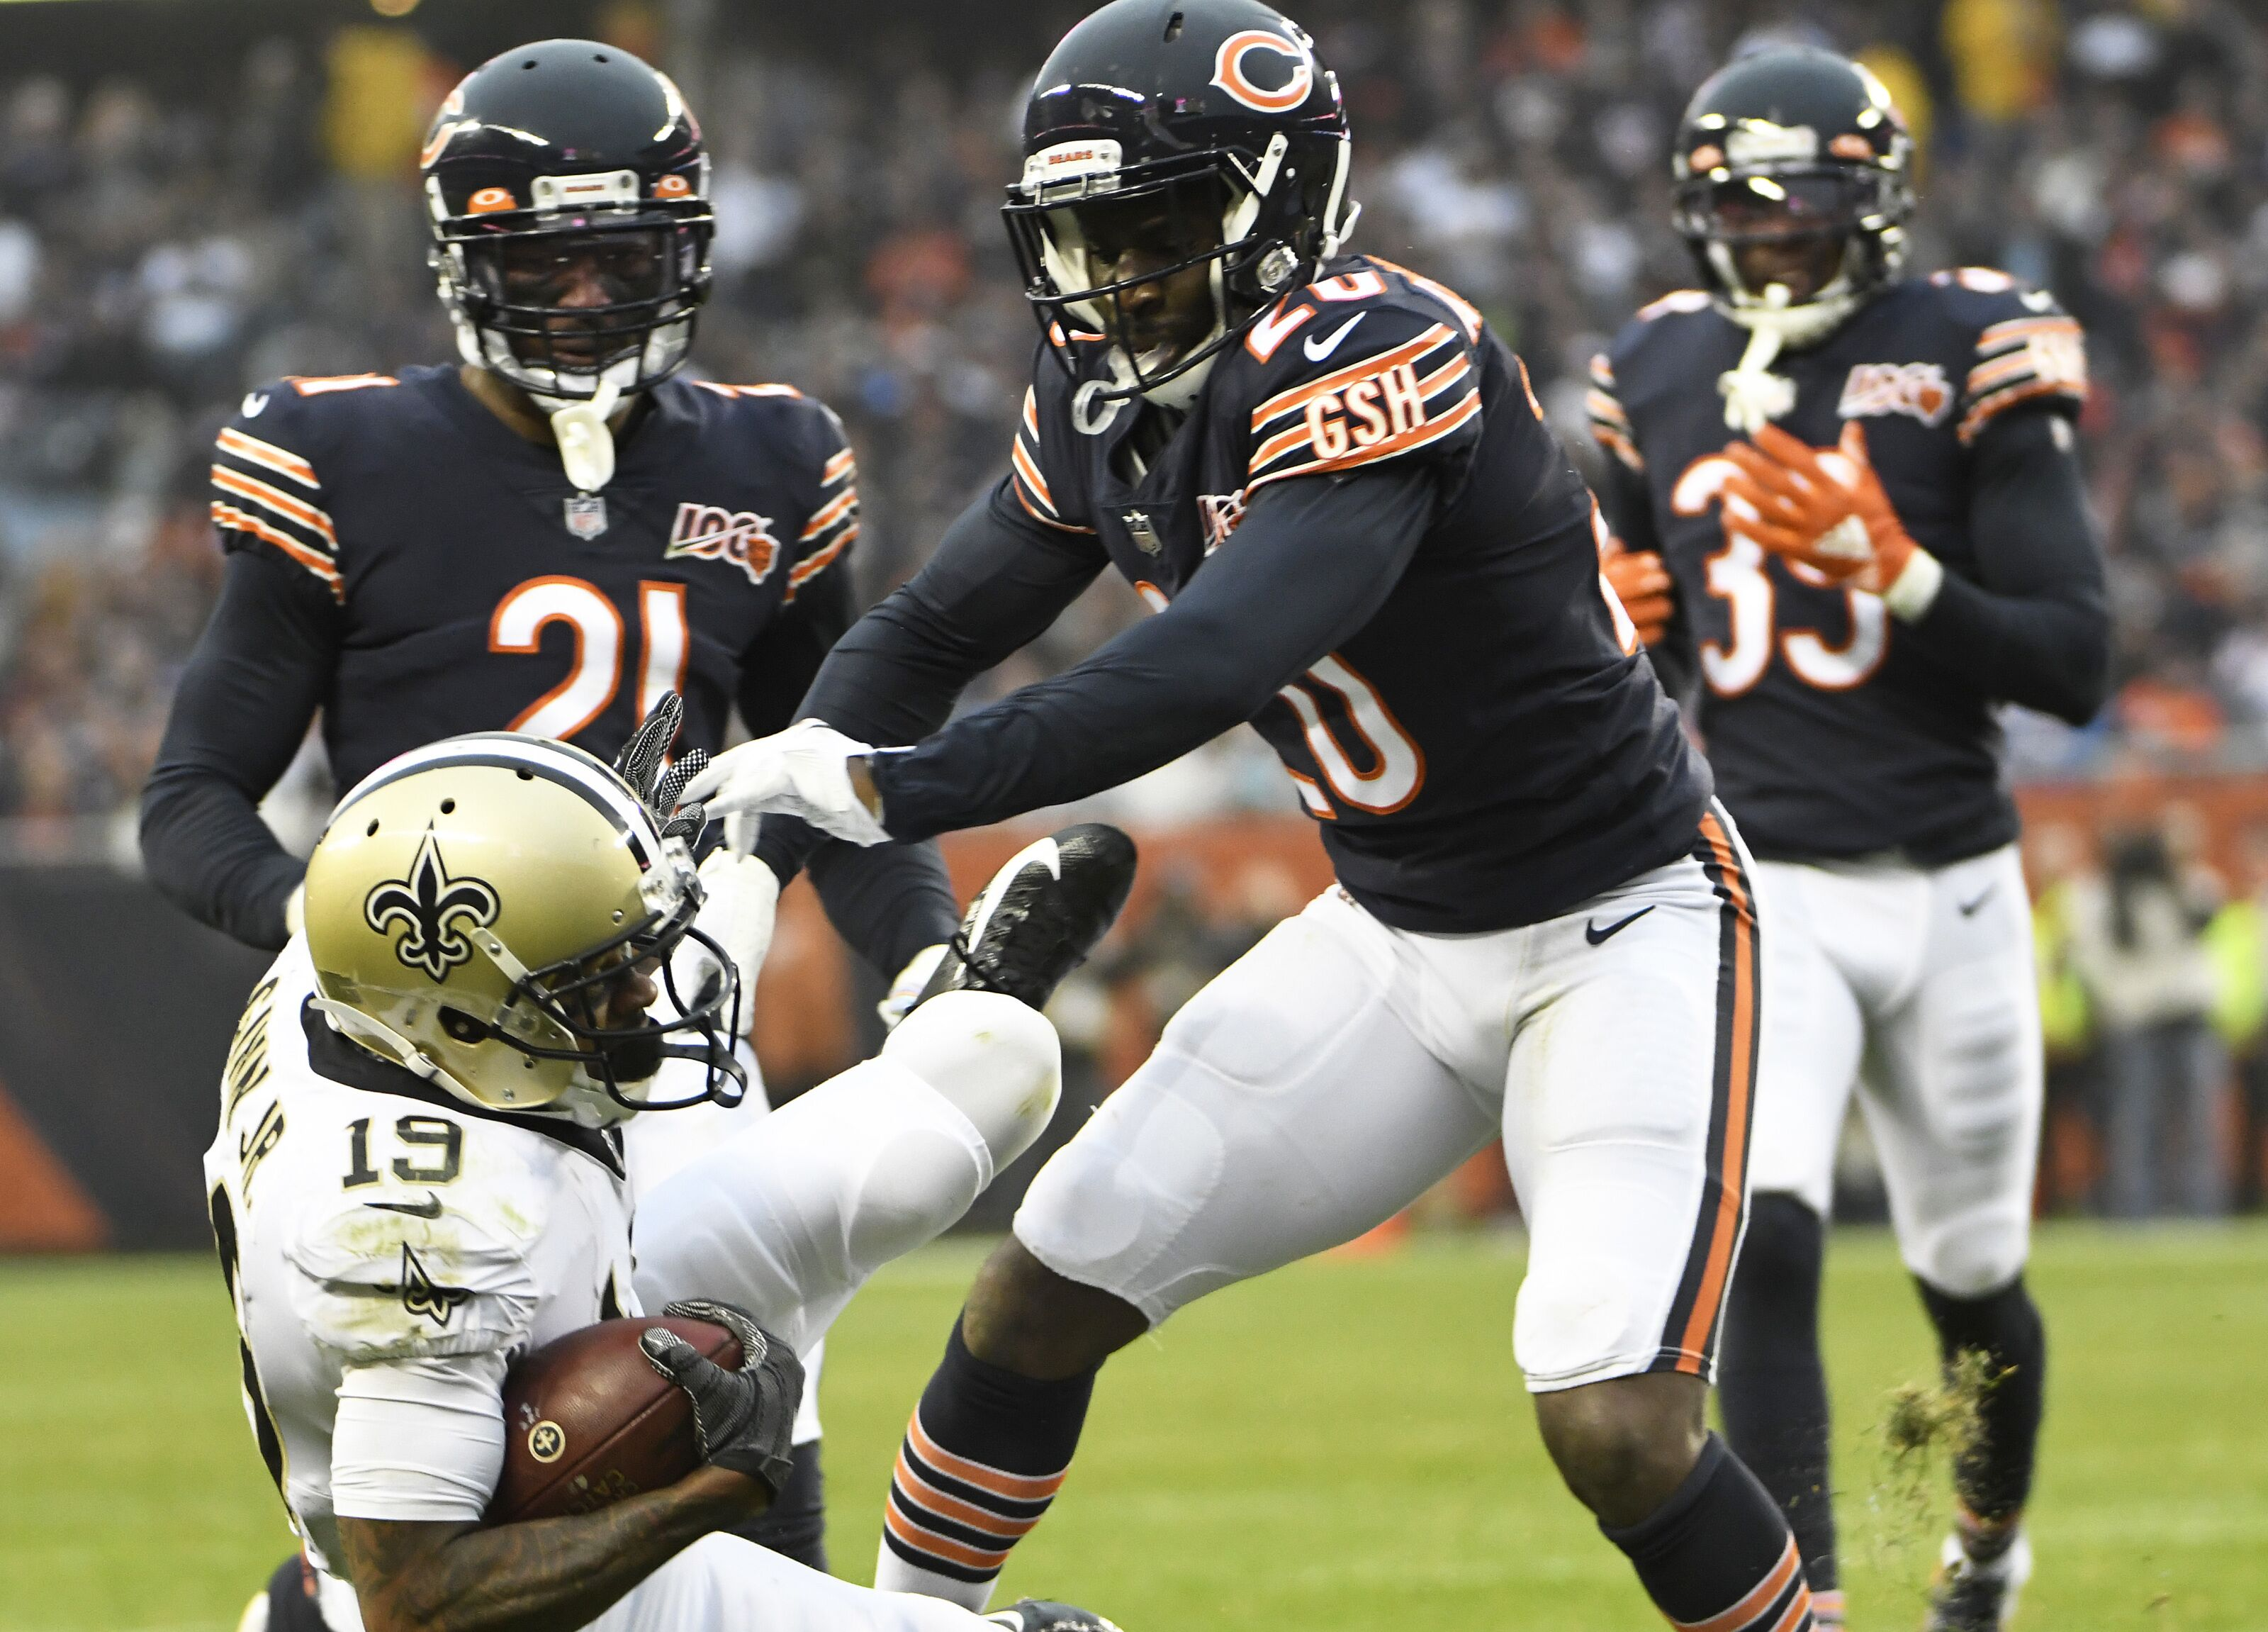 Chicago Bears: Discounted free agent corners who can replace Prince Amukamara